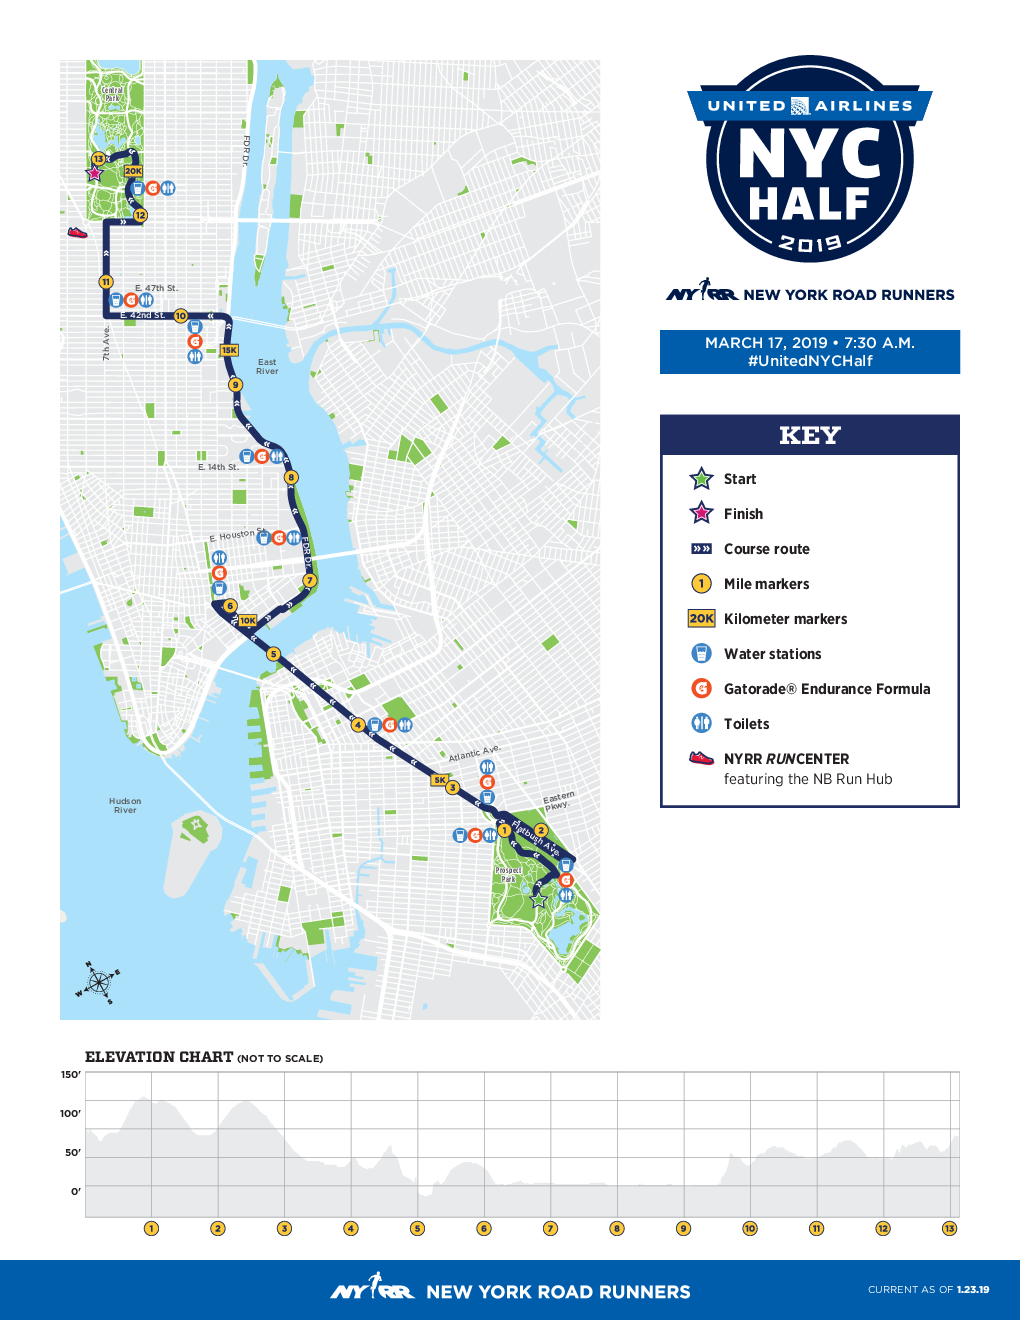 United Airlines NYC Half-Marathon Race Results - New York, NY - 3/17 ...